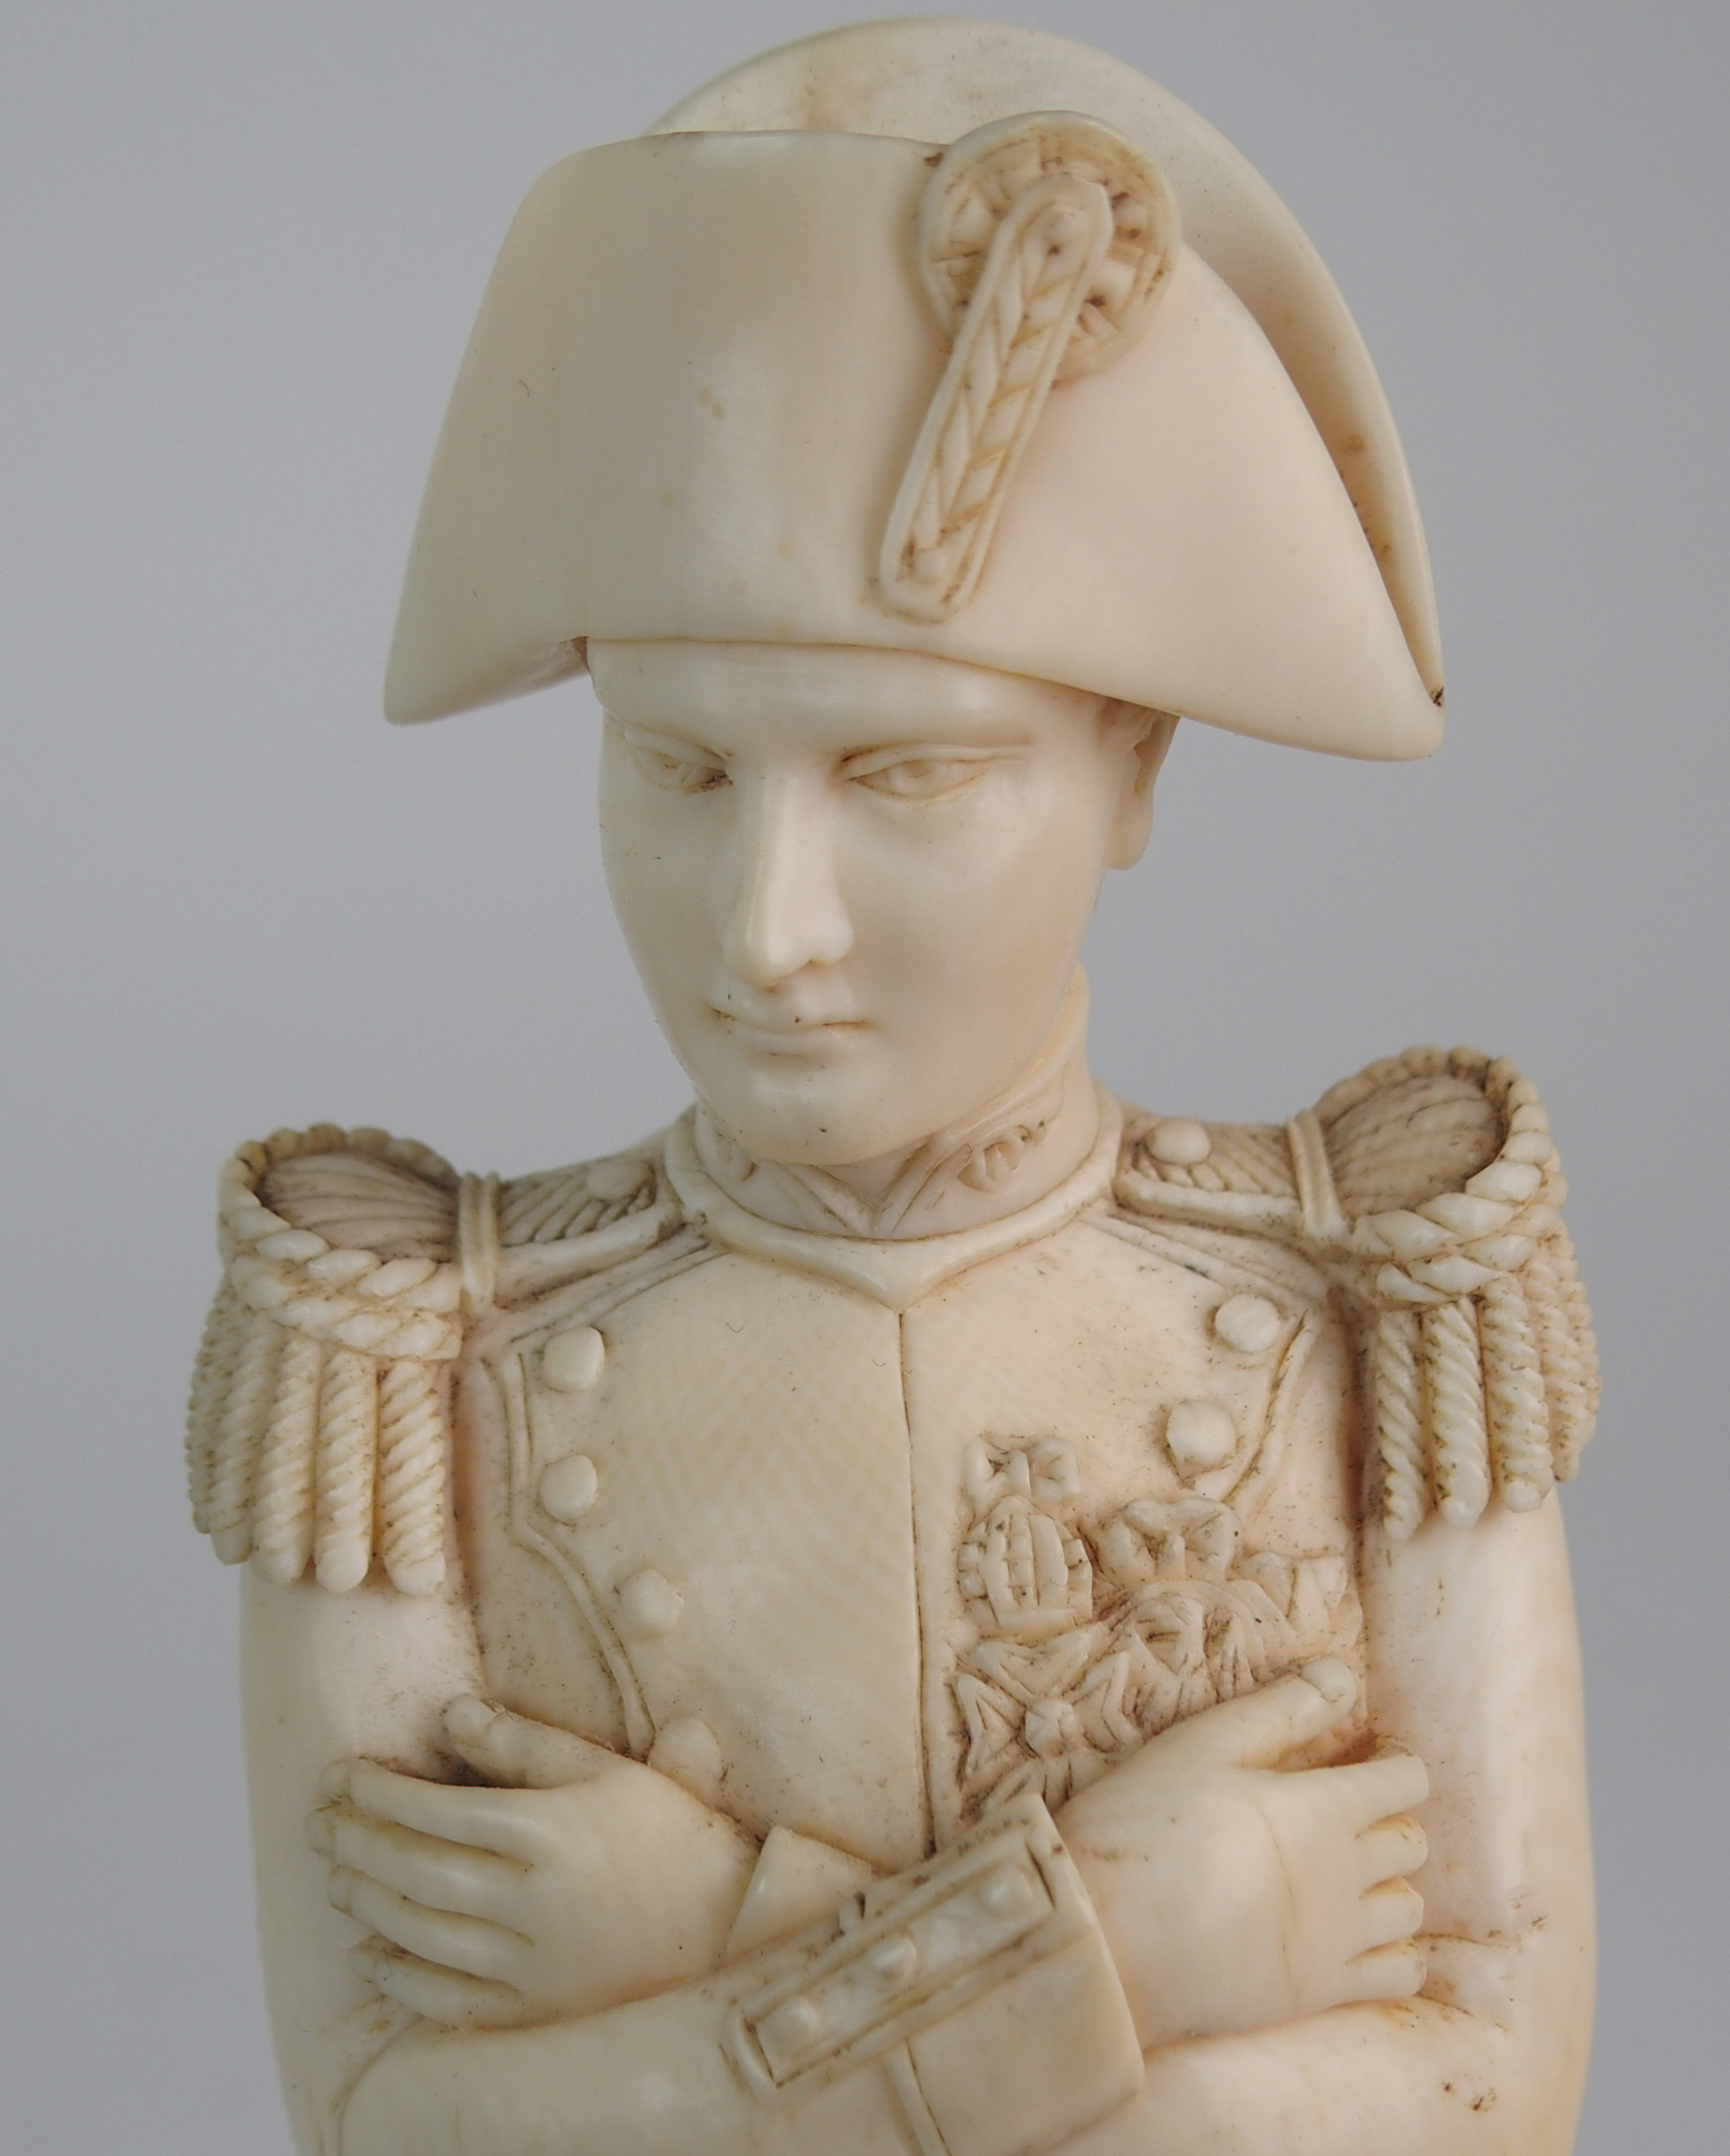 A LATE 19TH/EARLY 20TH CENTURY CARVED IVORY MODEL OF NAPOLEON in uniform with crossed arms, on - Image 3 of 9